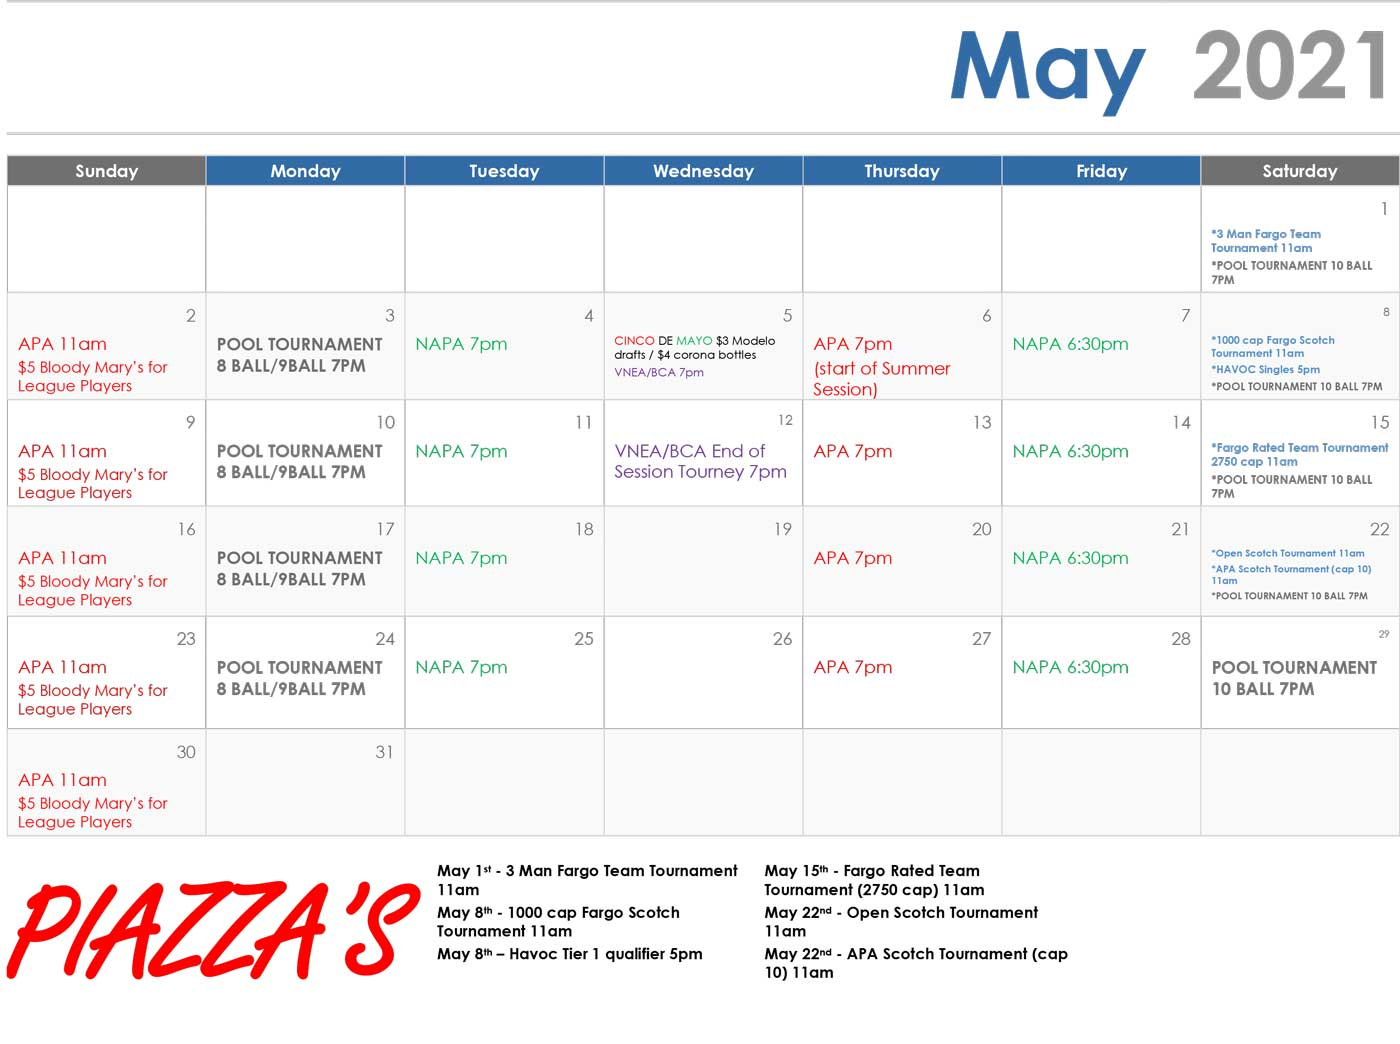 piazzas-updated-cal-may